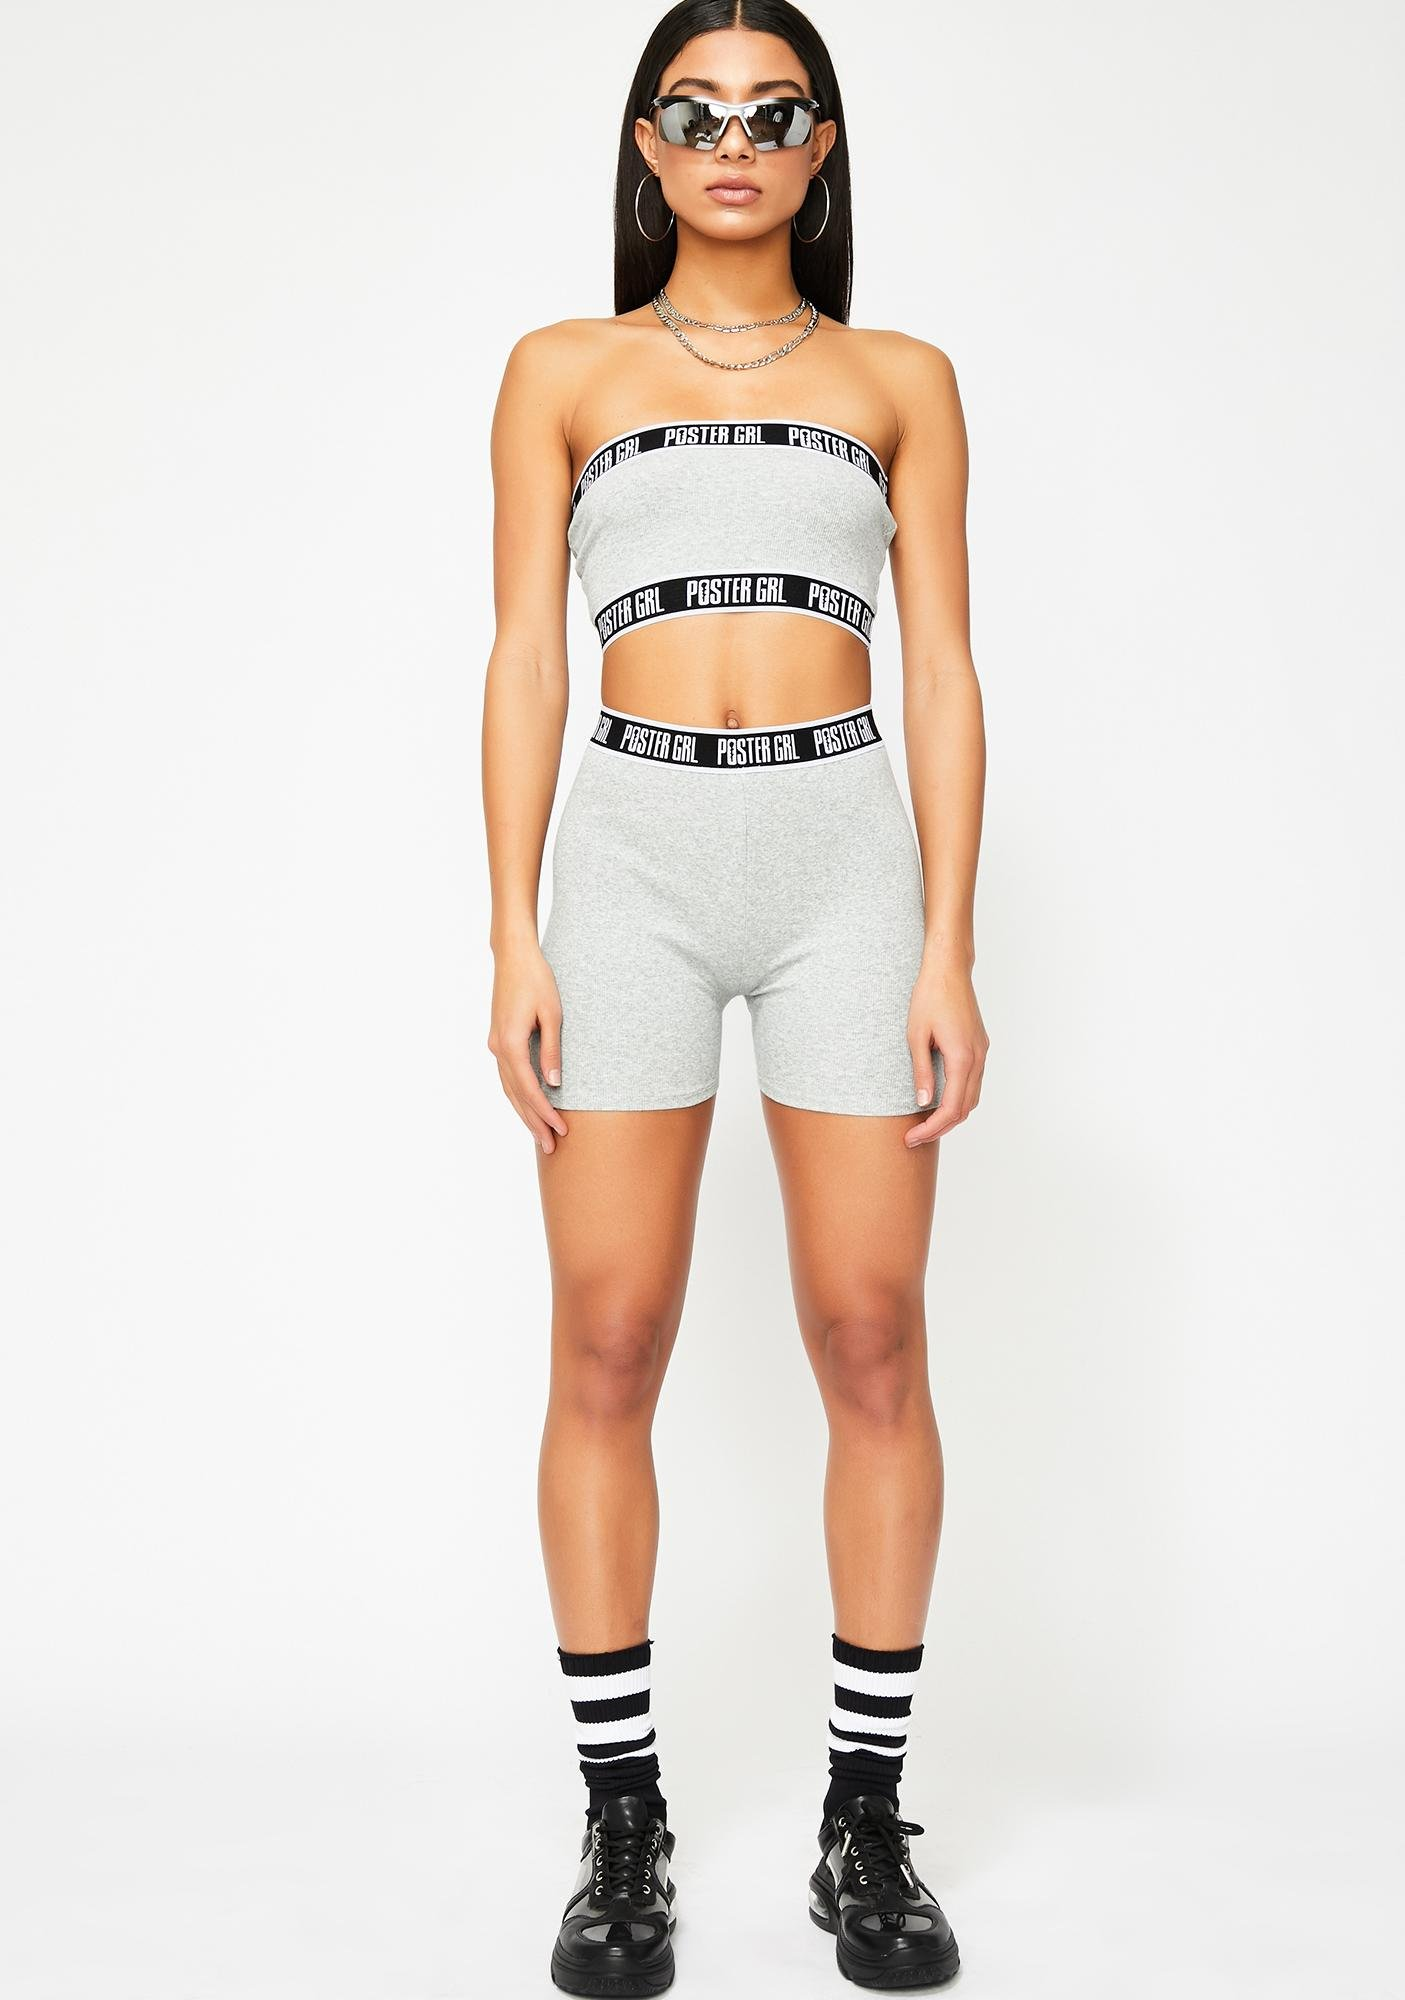 Poster Grl Boss Mode Biker Shorts